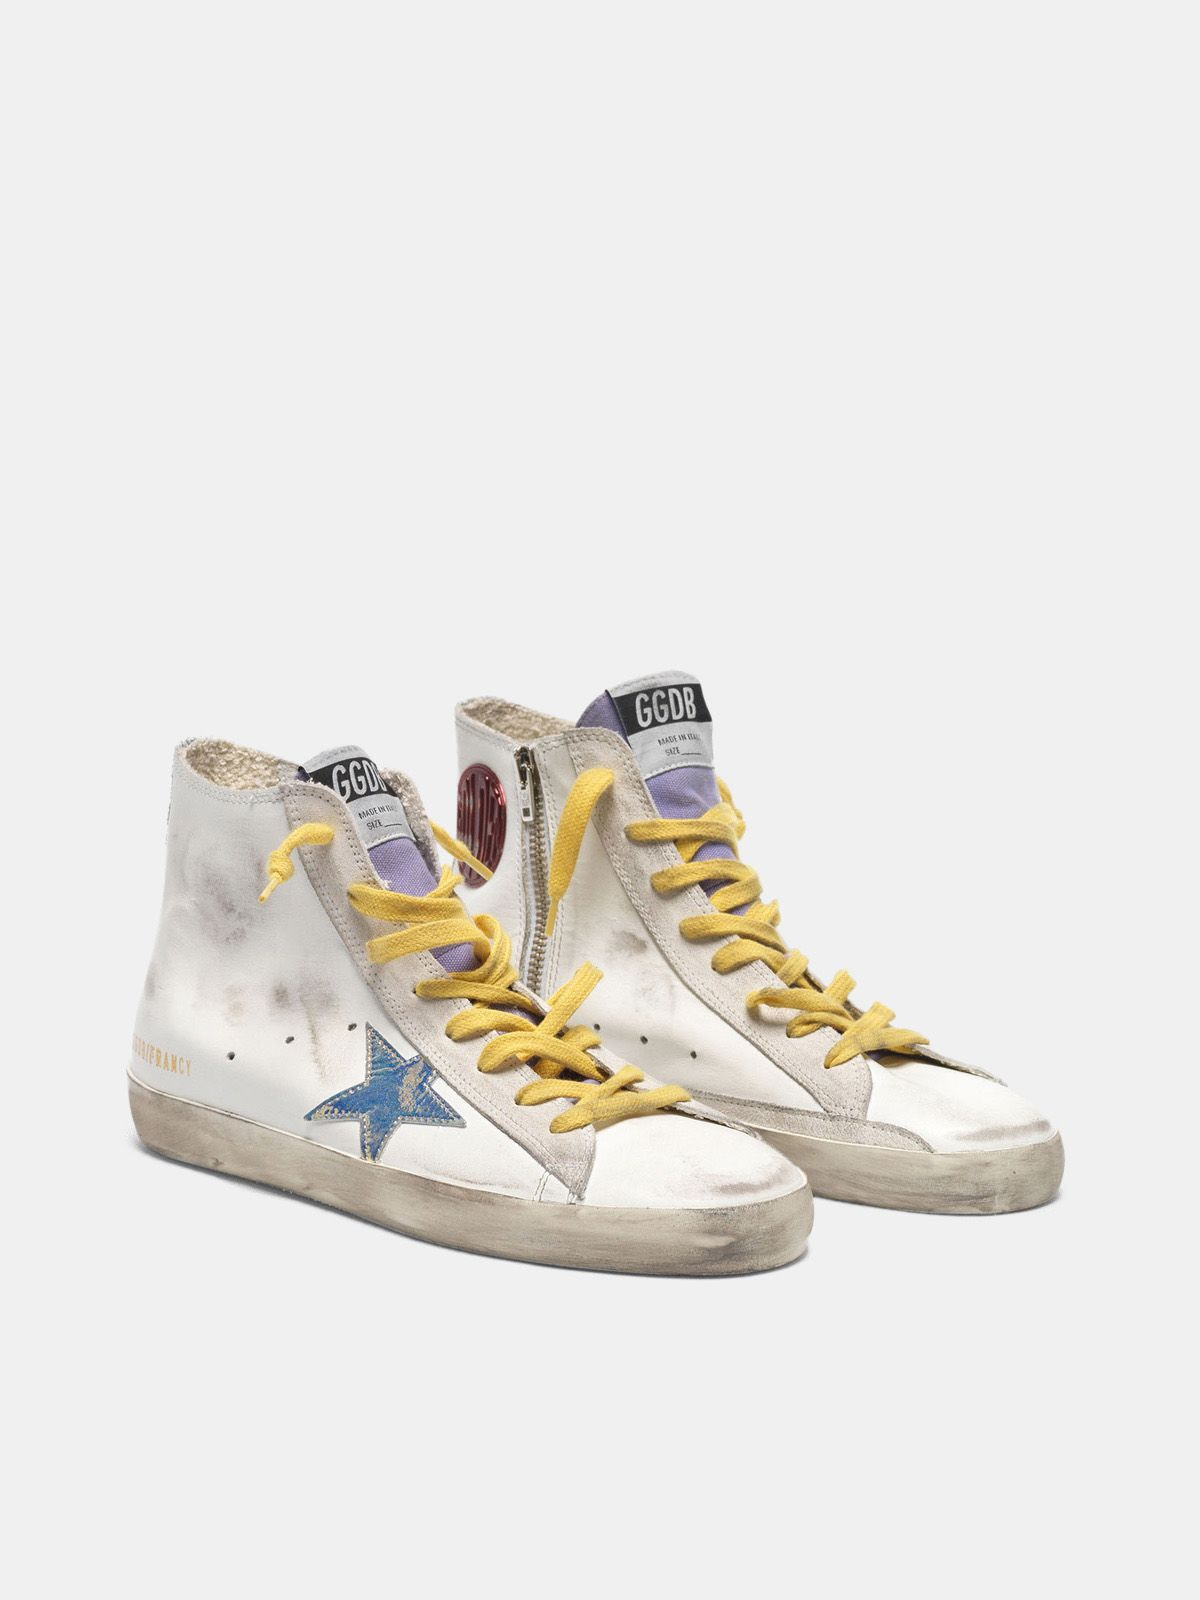 Golden Goose - Francy sneakers with iridescent star and glittery bands in